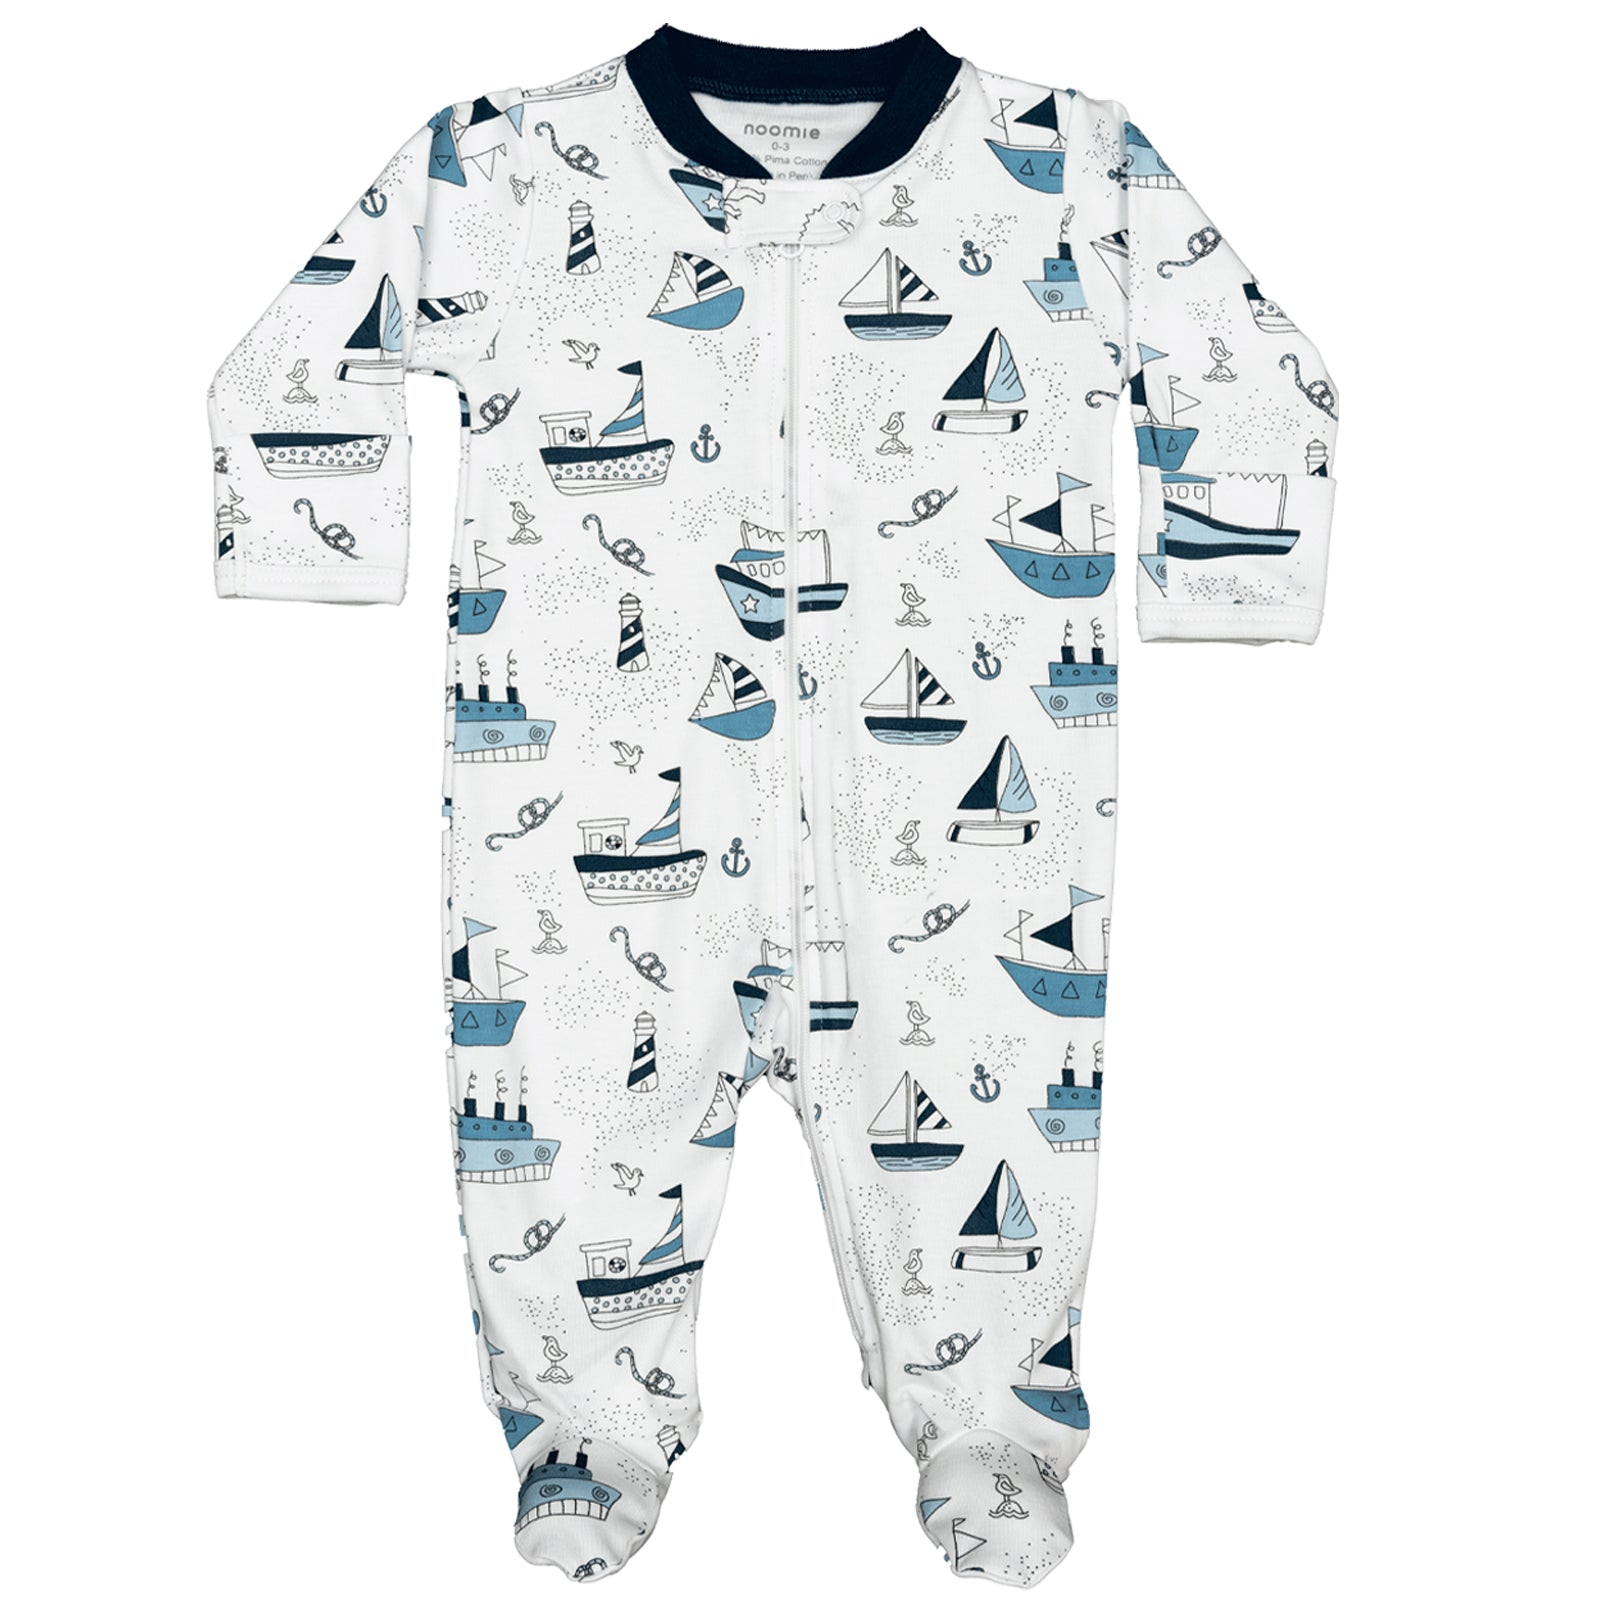 Baby Noomie Zipper Footie Boats